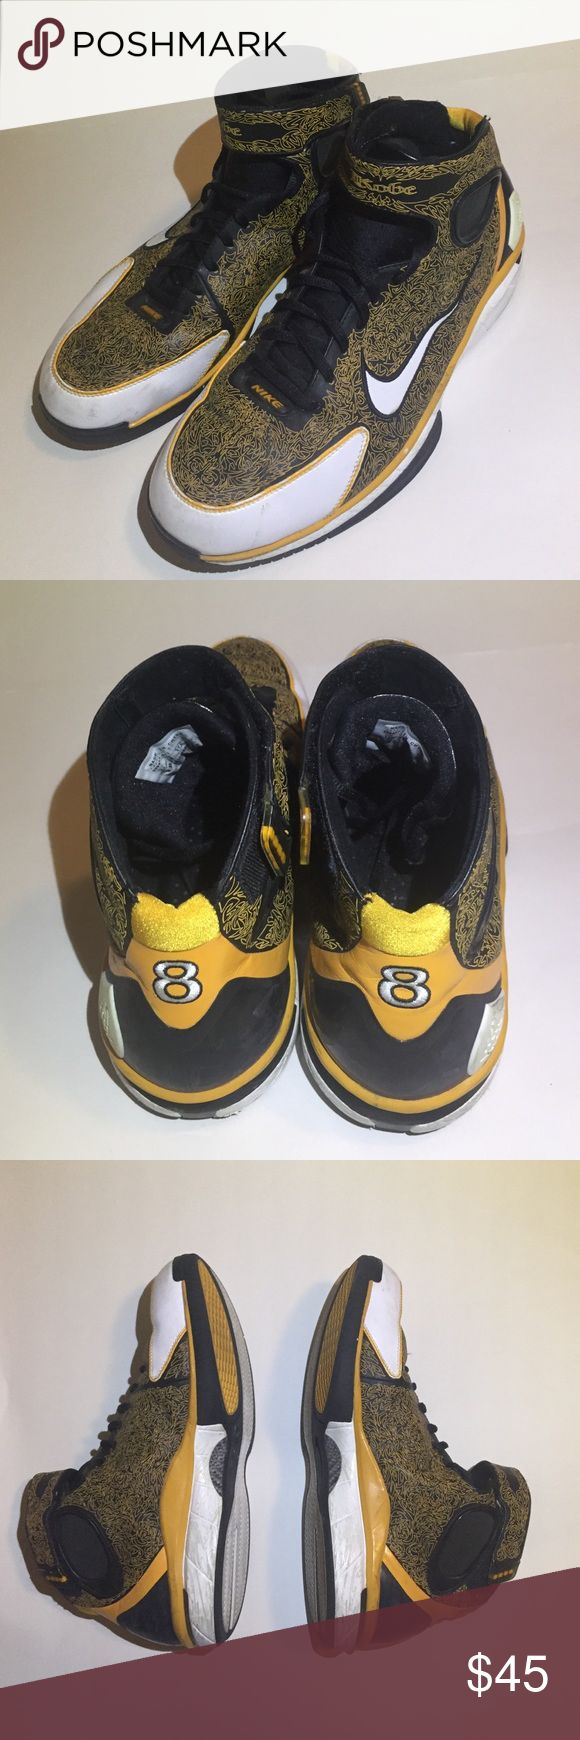 new arrival 82df0 f47c7 ... where to buy nike kd 9 rød and hvit parts sneakerwholesale bcd16 5291d